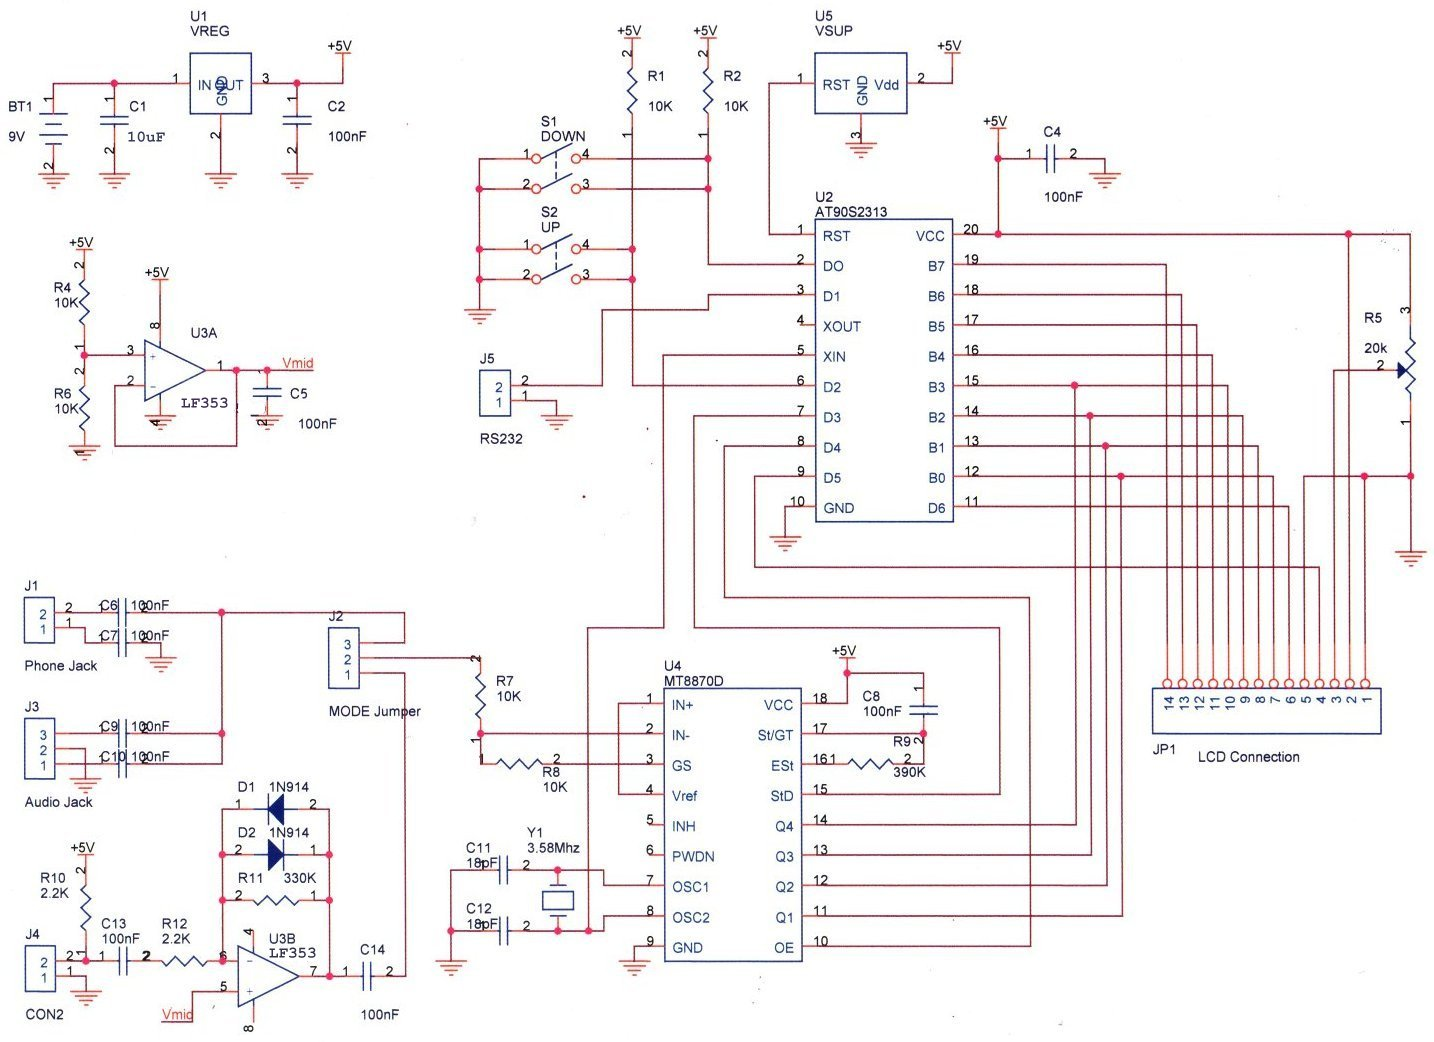 Dtmf Decoder For Under 70 Can Ics Wiring Diagram Parts Placement Before Beginning Assembly Proper Orientation Of Diodes And Capacitors Begin By Installing The Seven Jumper Wires